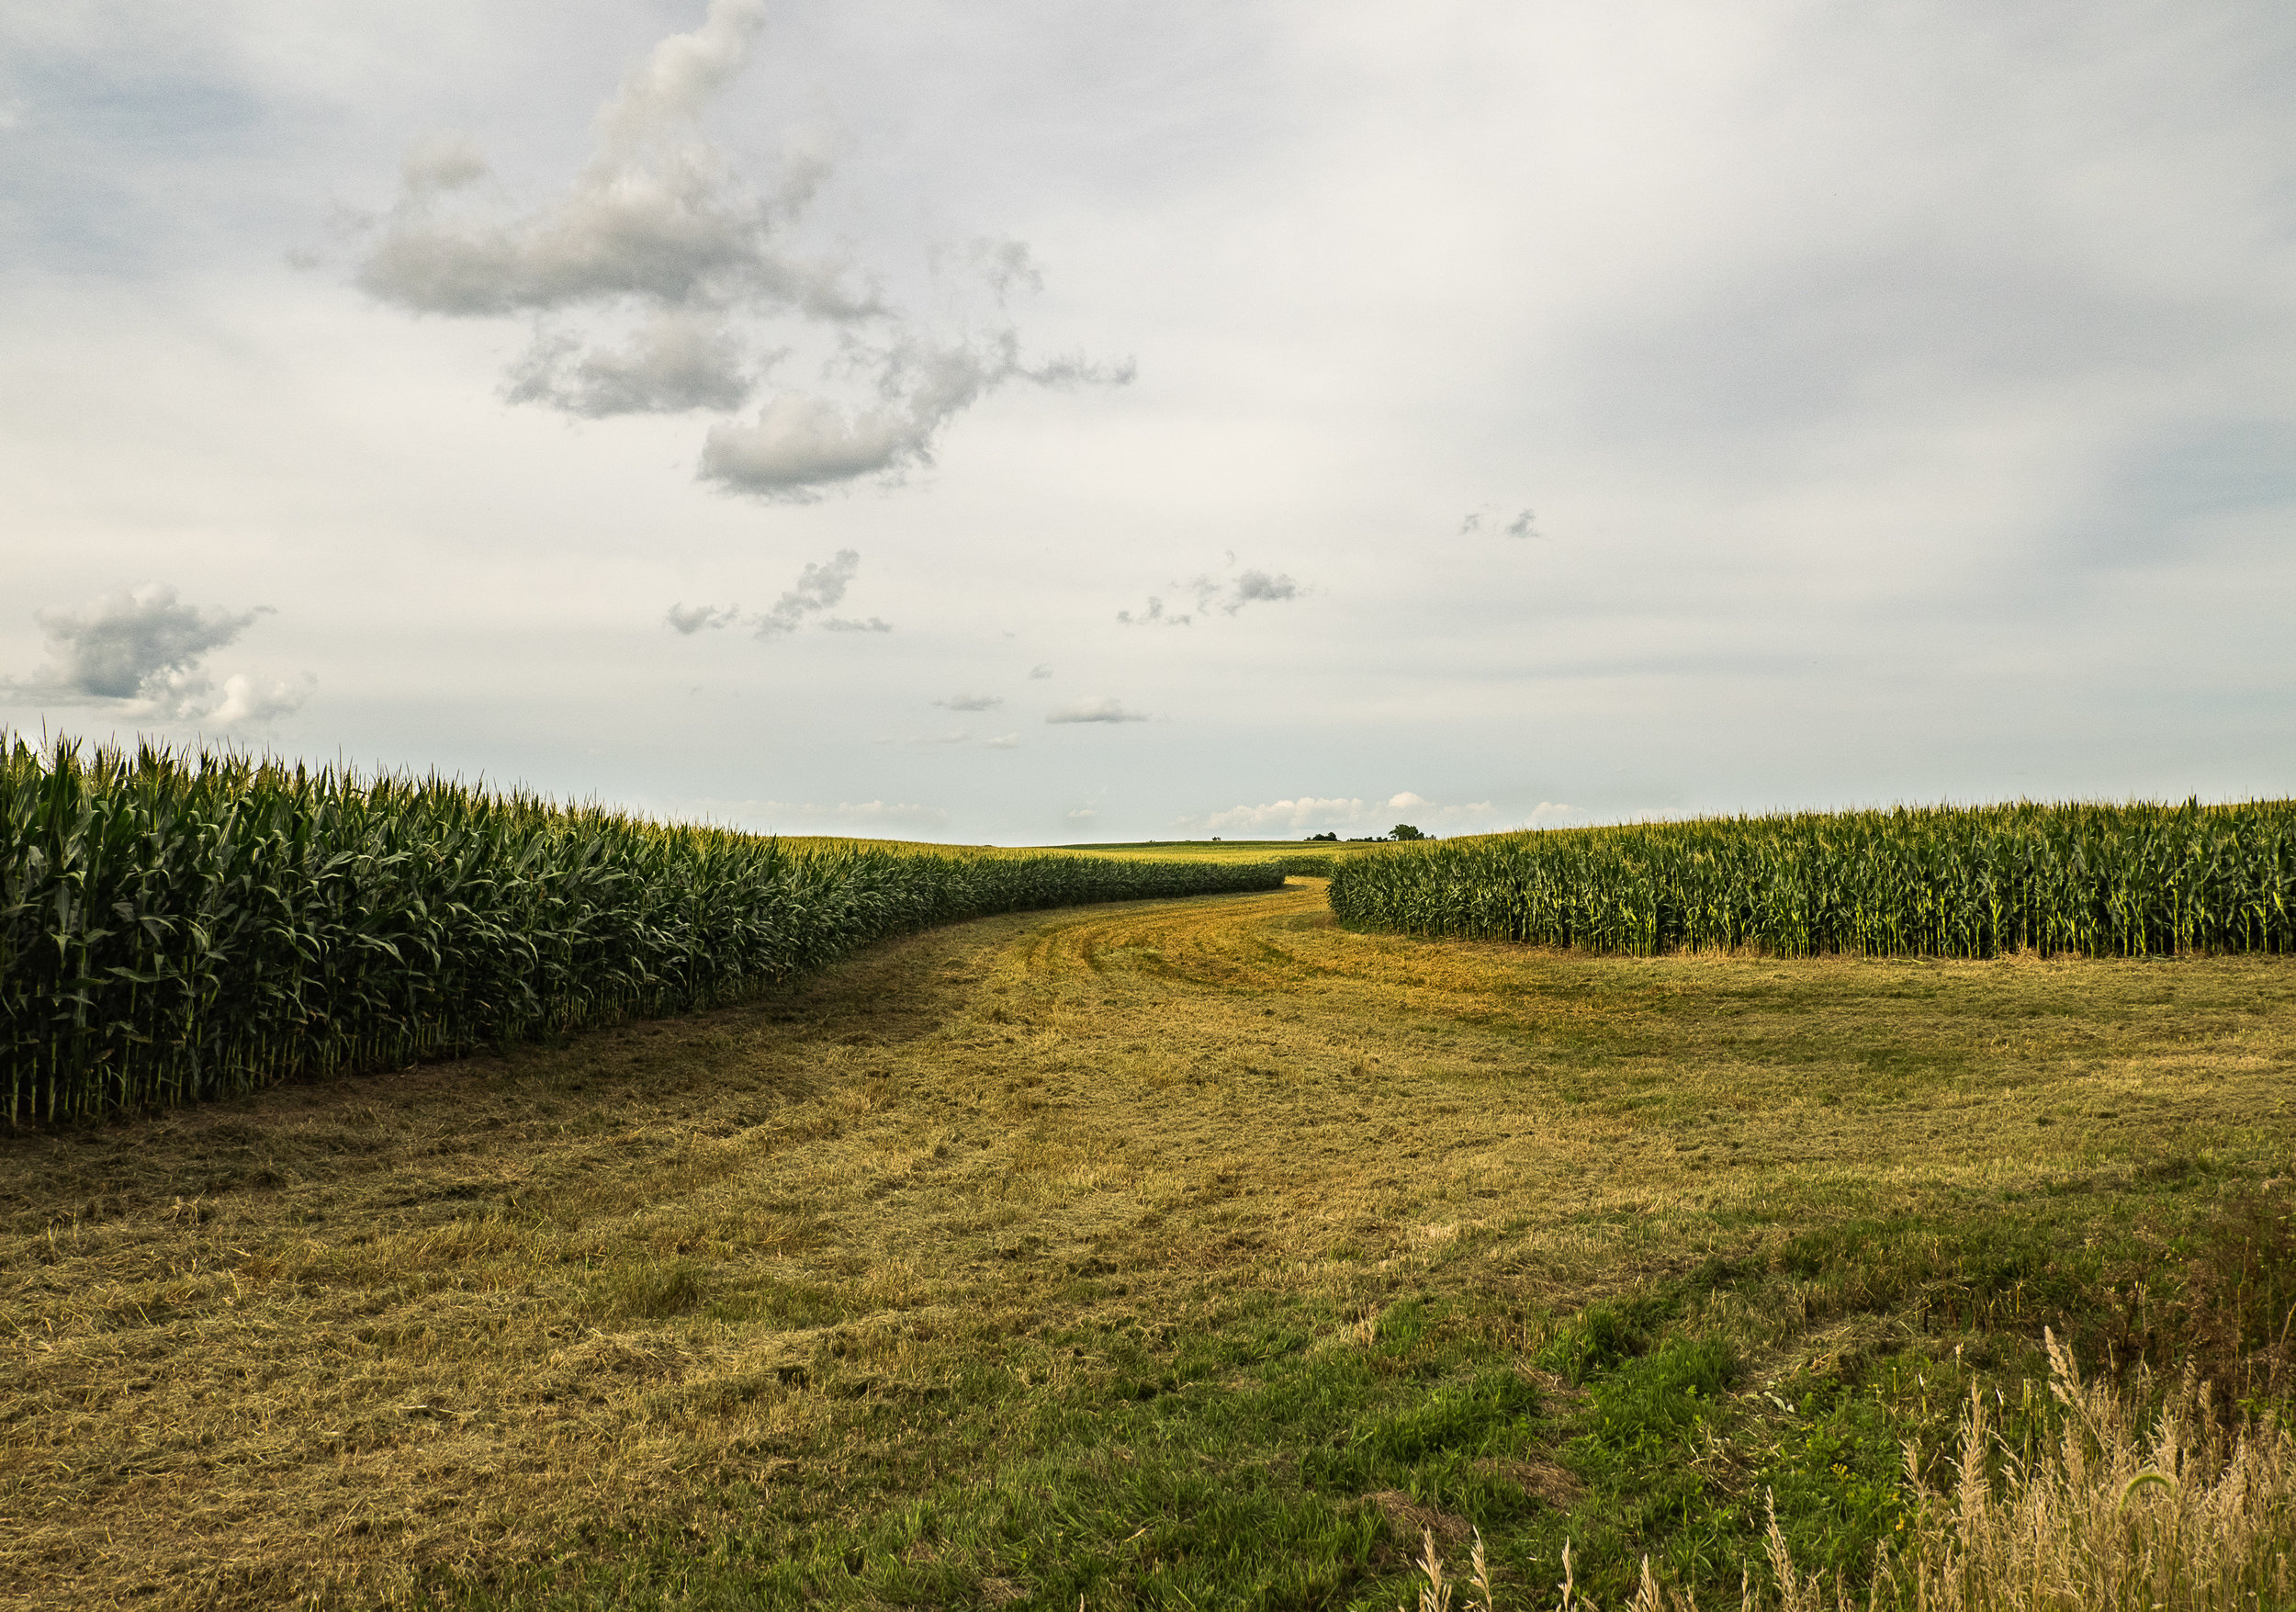 Meandering Rows and Clouds